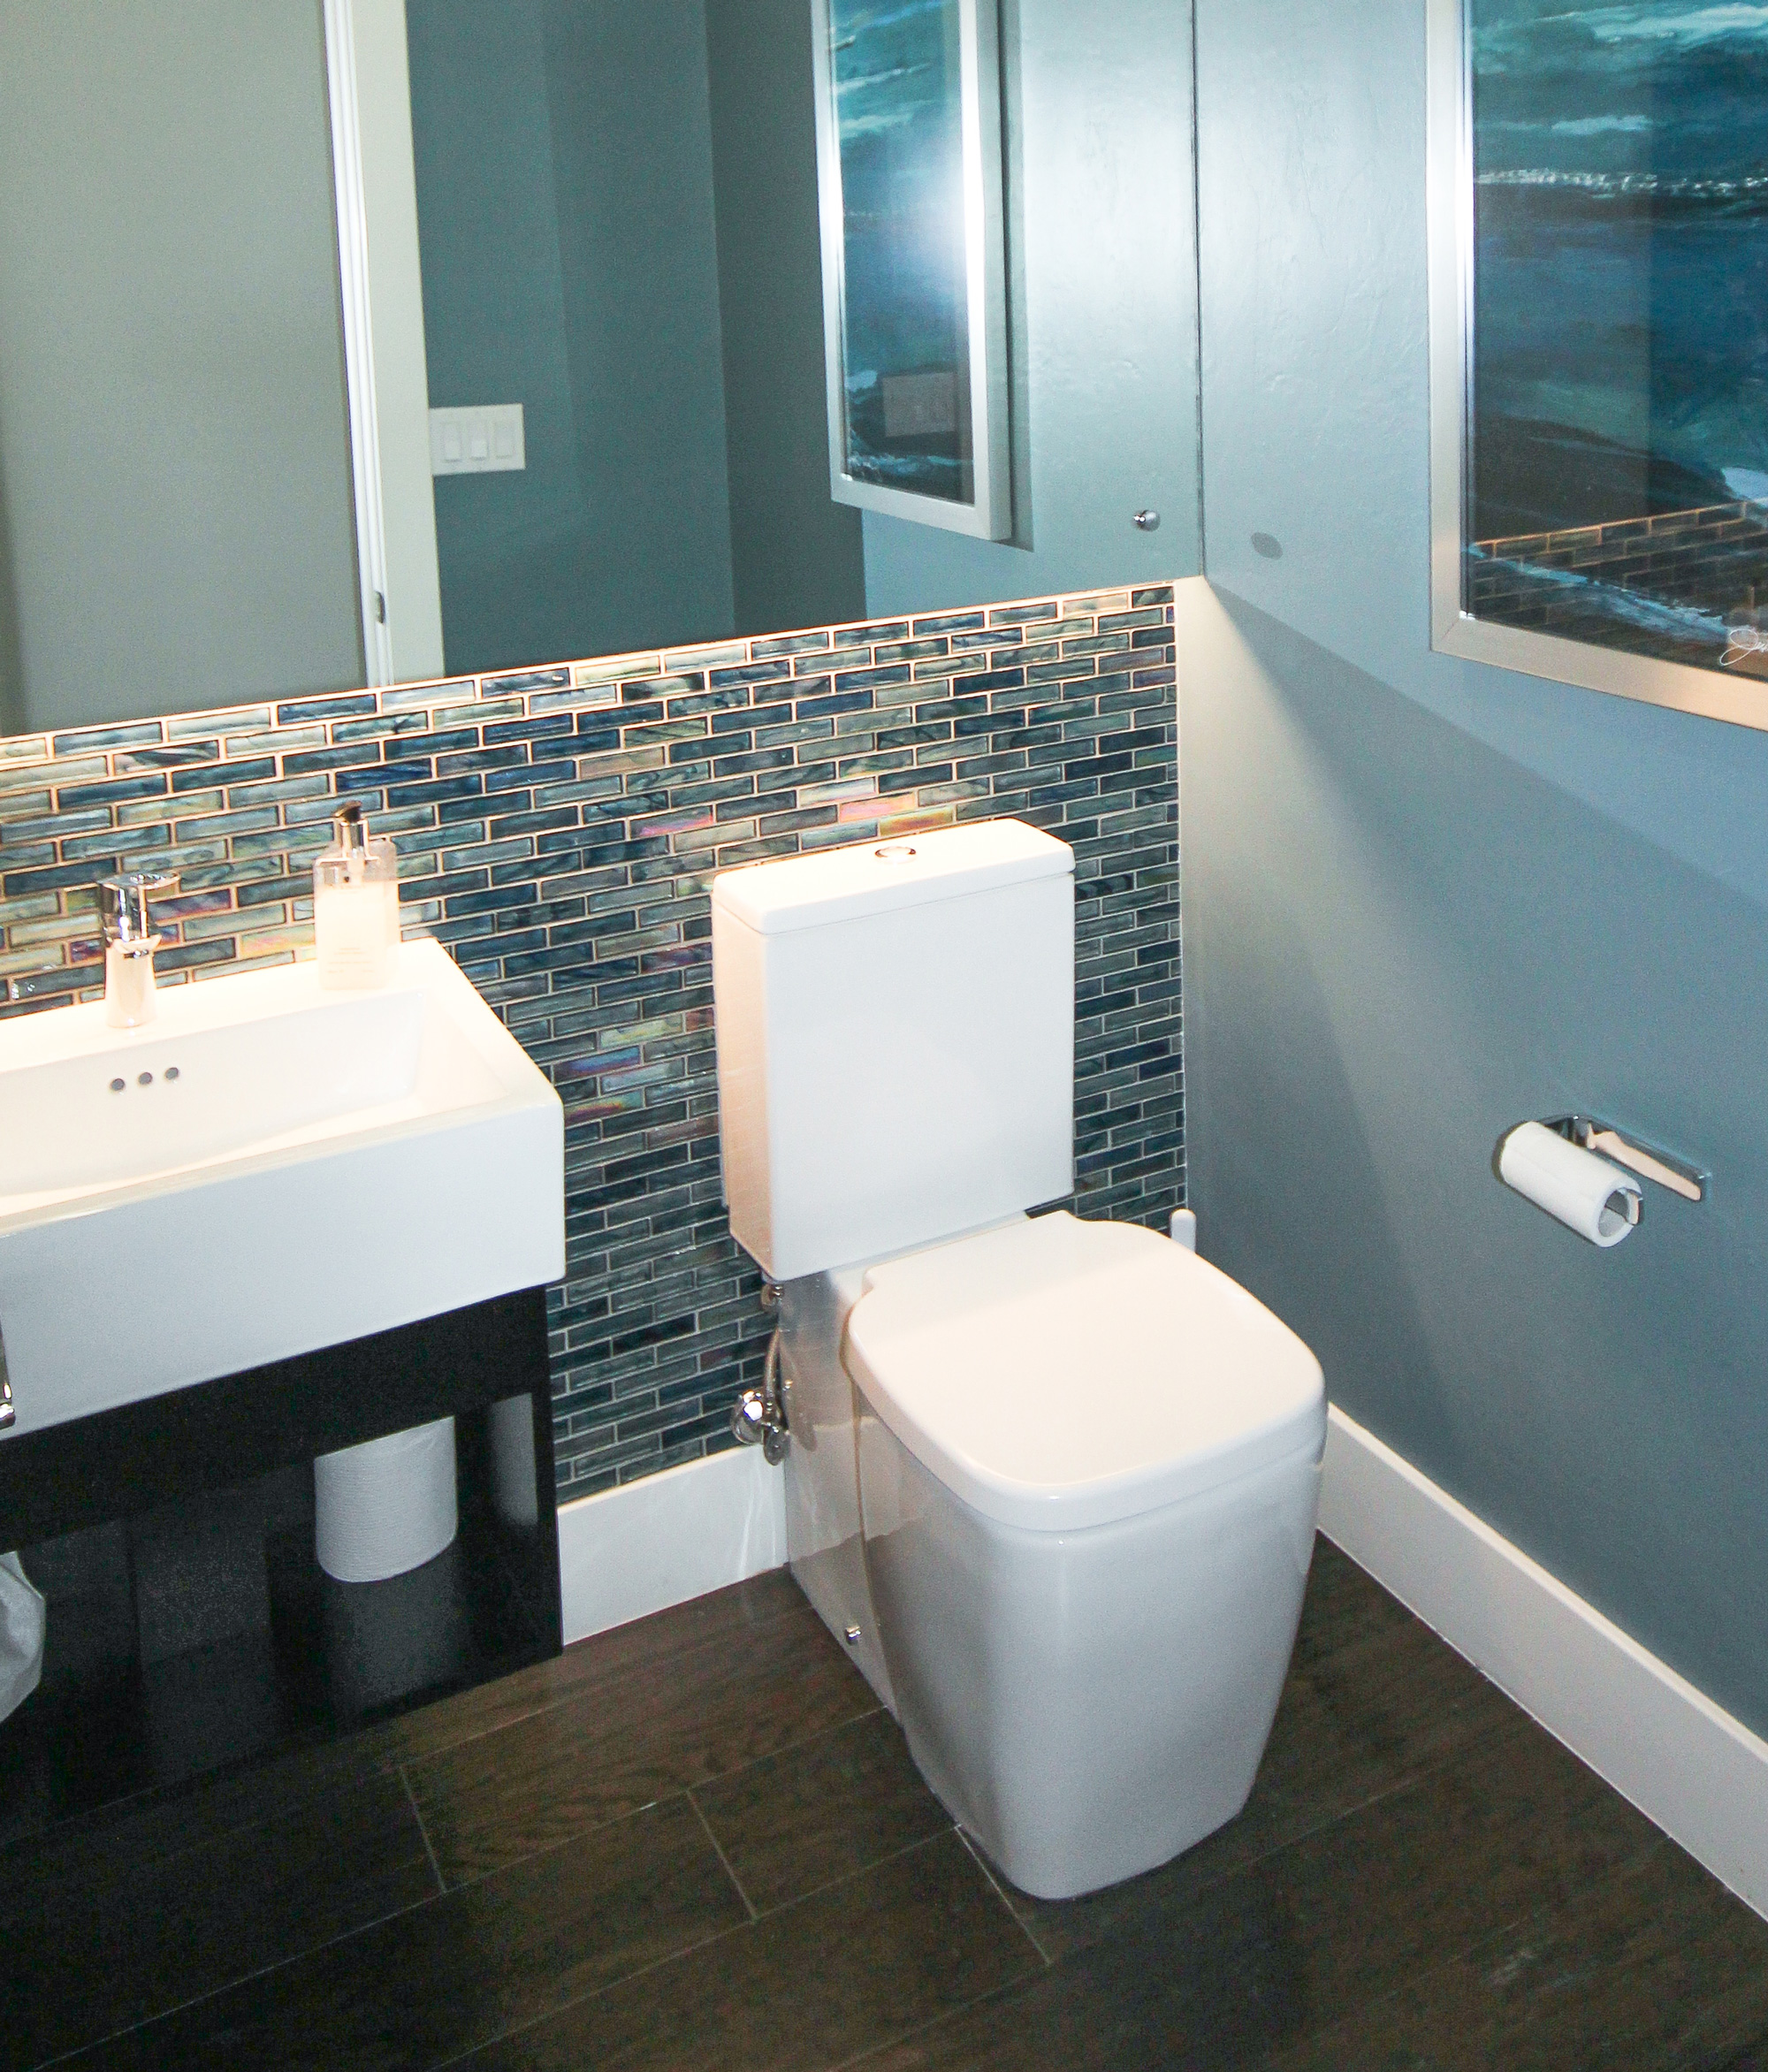 Bathroom Remodel Naples Fl premiere showcase: bathroom renovations & makeovers contractor